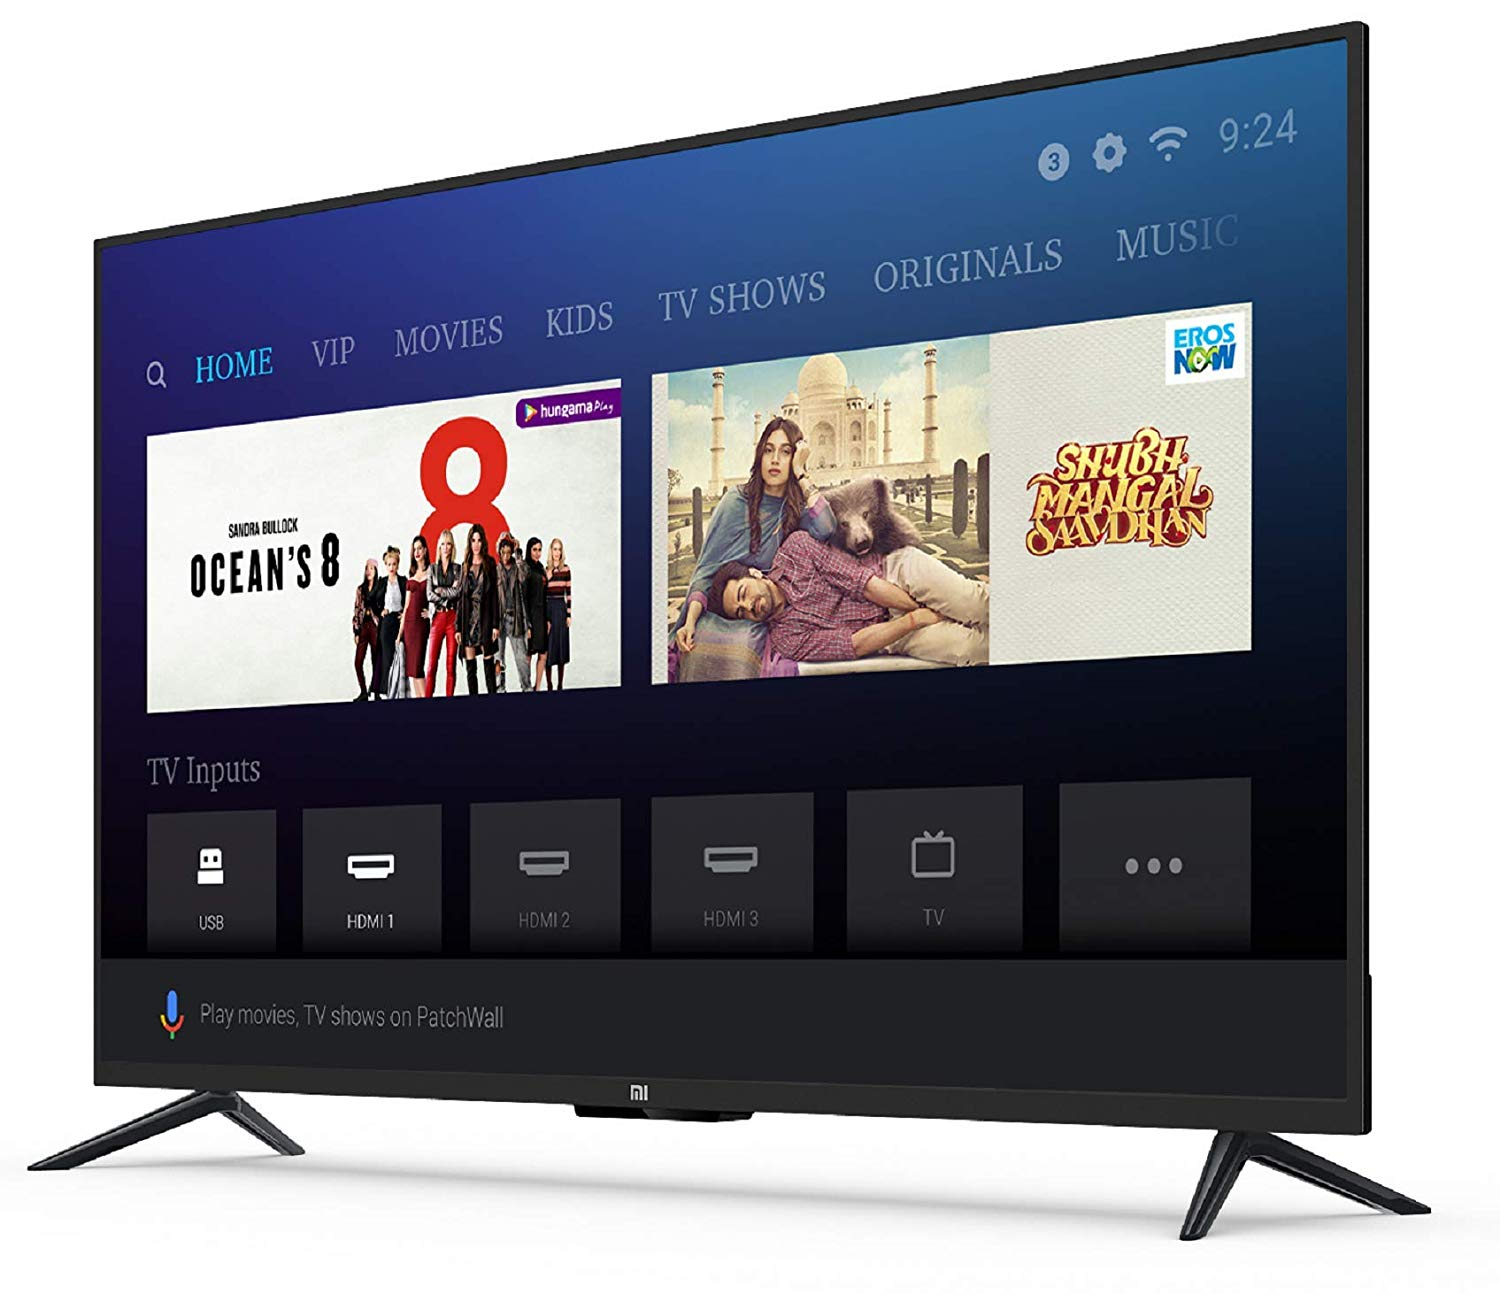 52d4652edc1 XIAOMI MI LED SMART TV 4A PRO (49) - Reviews